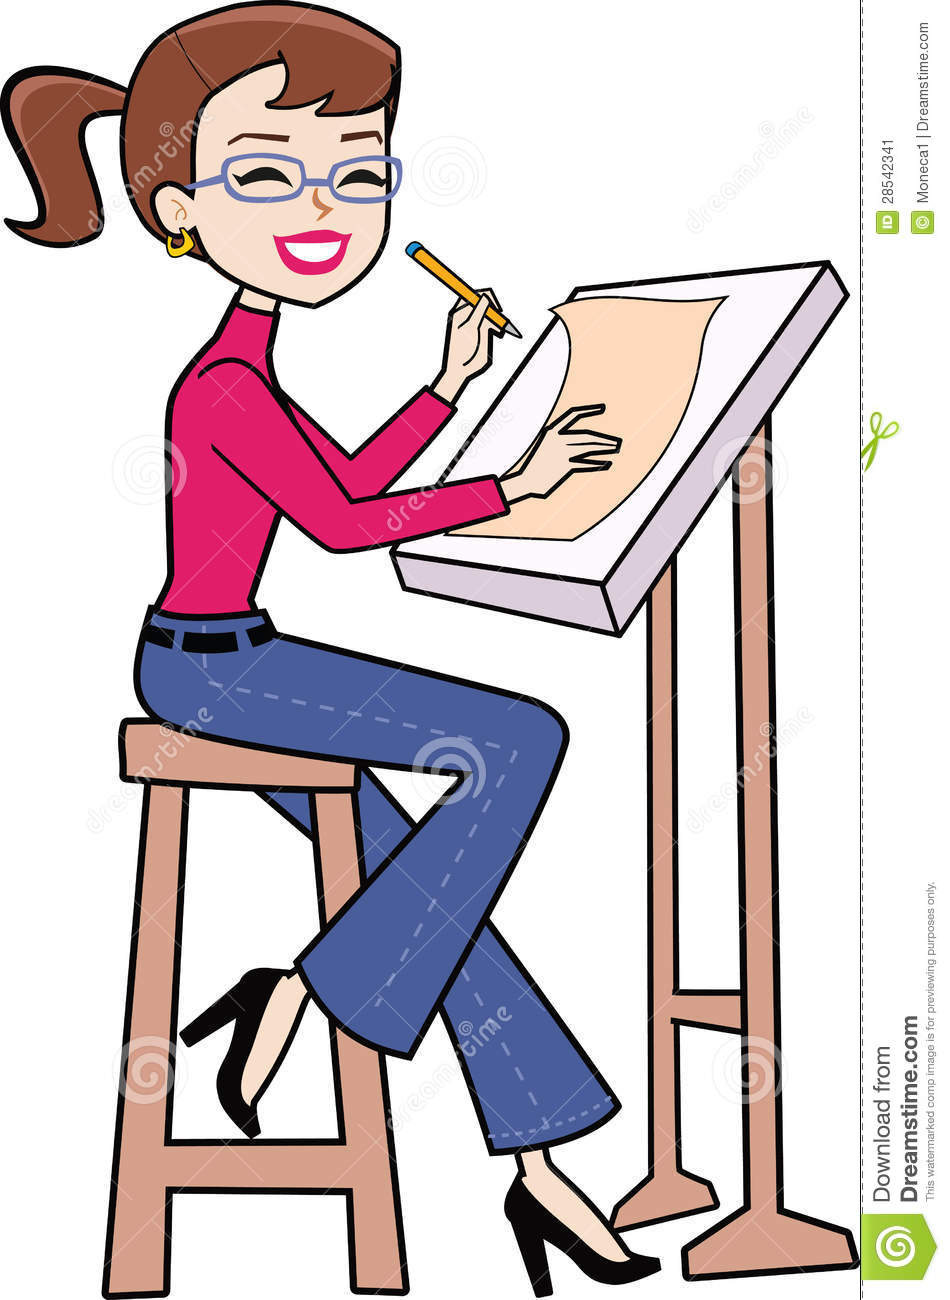 Drawing clipart woman artist. Someone clip art at